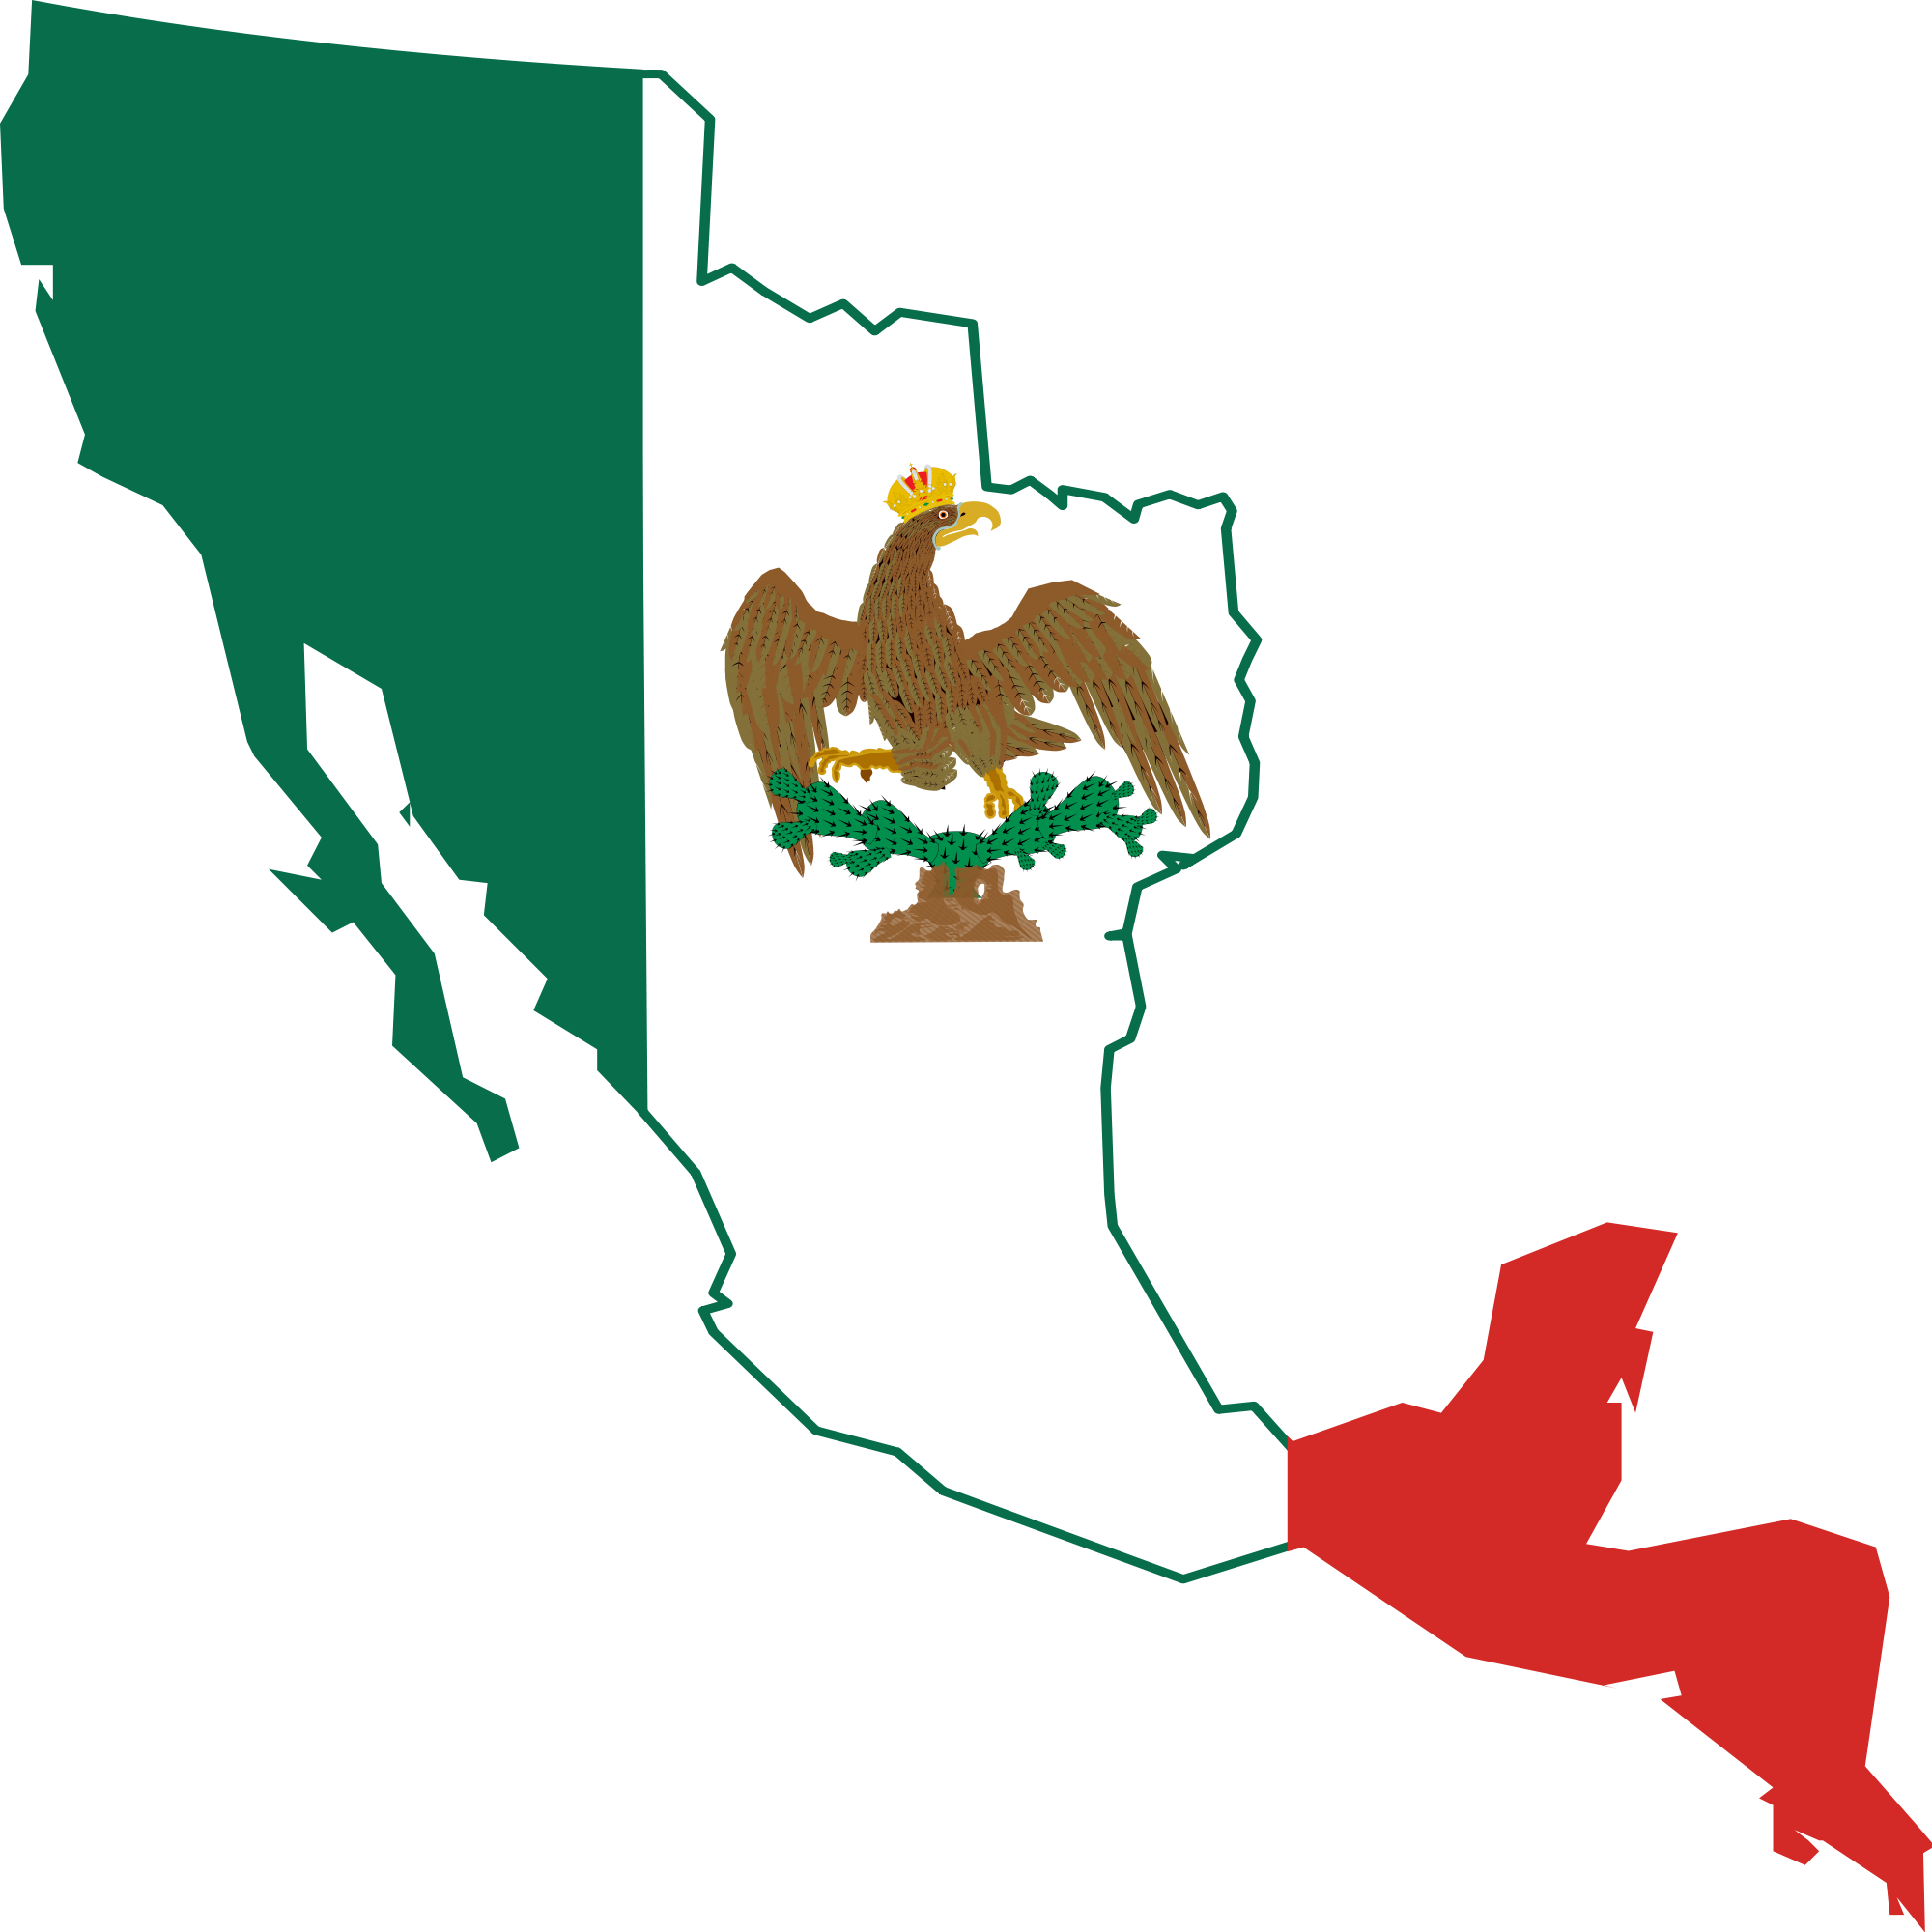 Mexico map outline png. File flag of the